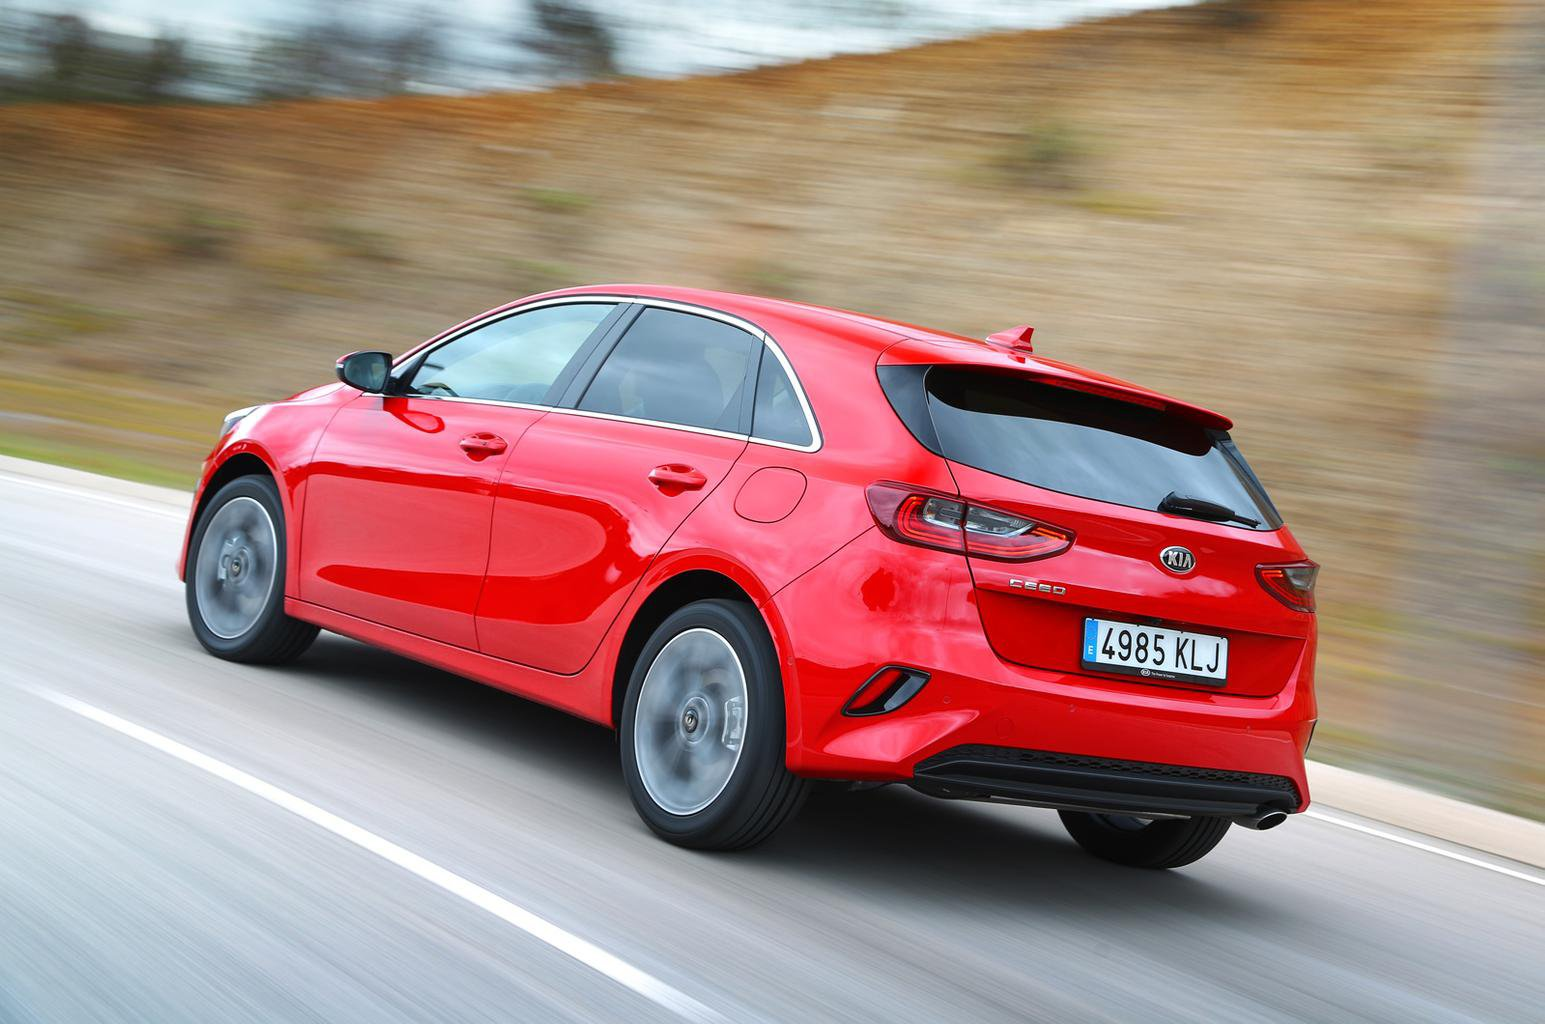 2018 Kia Ceed review – verdict